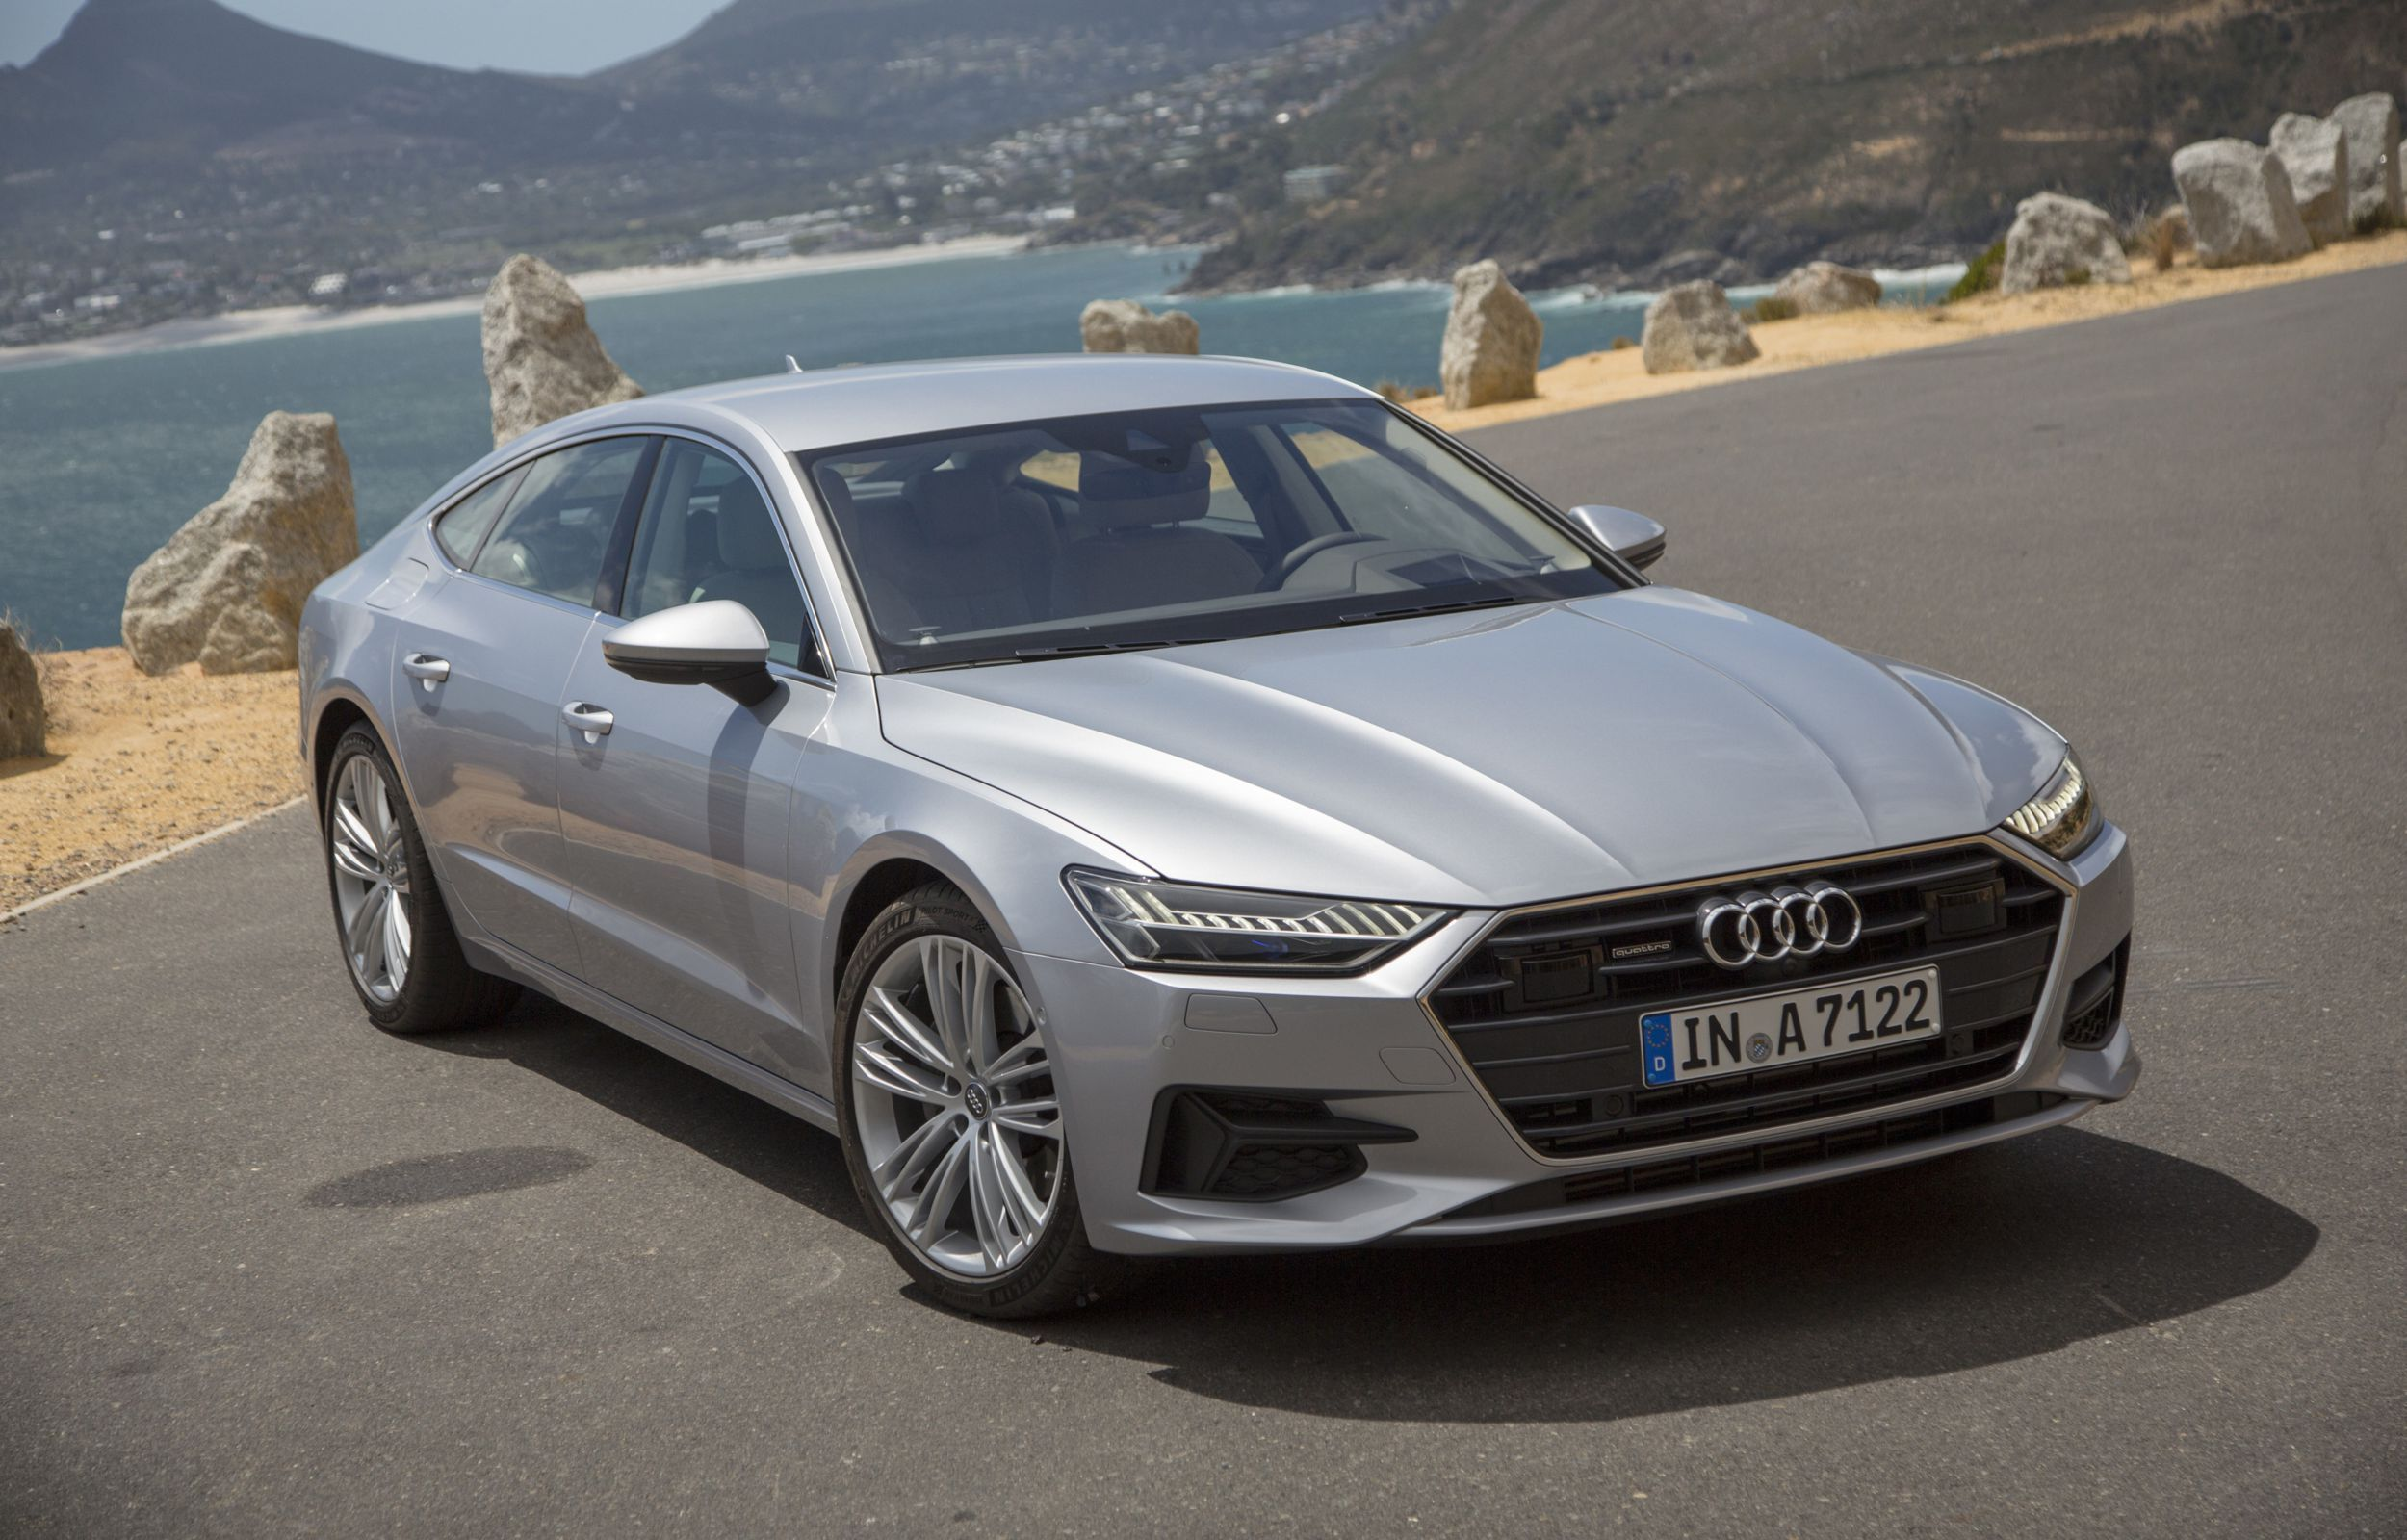 Audi A7 Sportback nombrado 2019 World Luxury Car